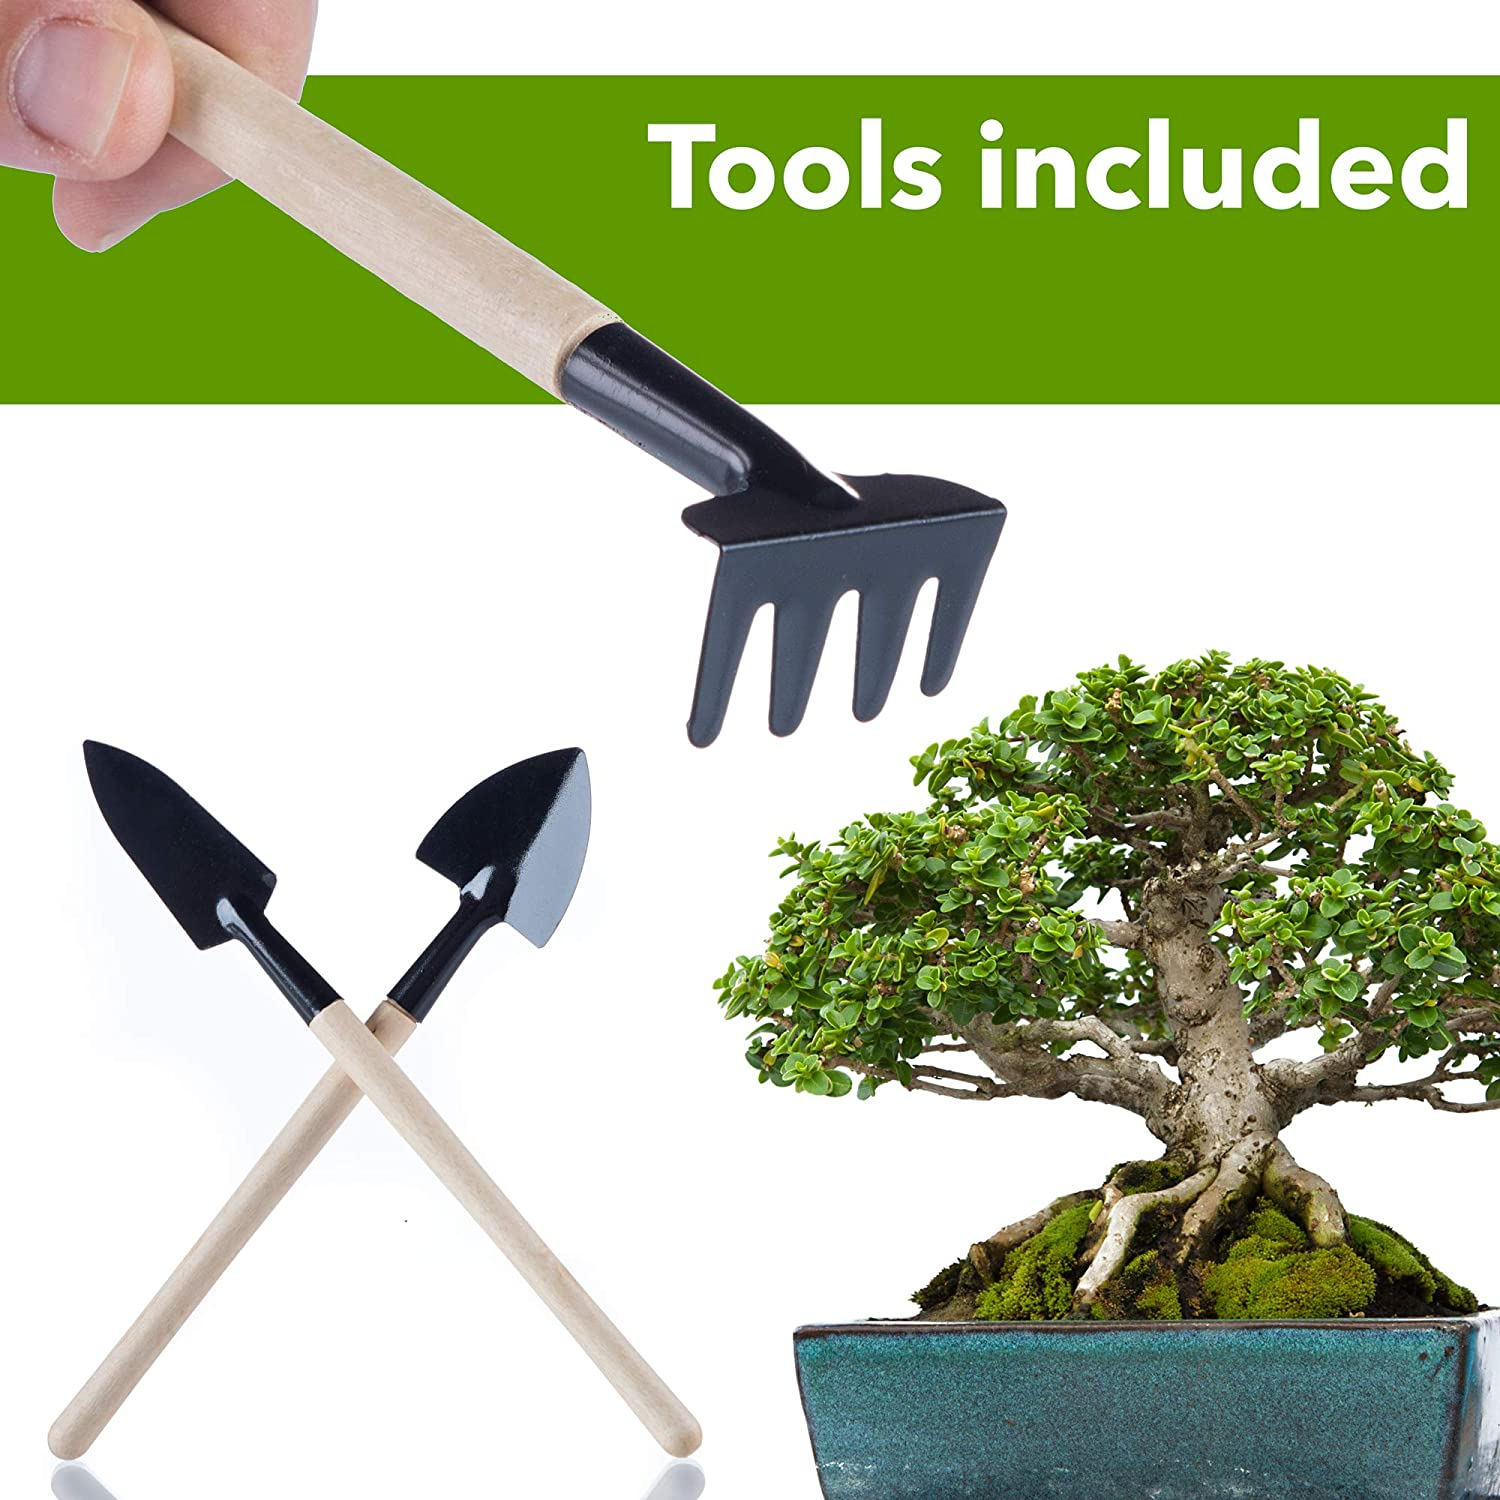 5 Rolls 144 Feet Plant Wire Bonsai Anodized Aluminum Black Green Rust Resistant and 3 Pcs Mini Wooden Garden Tools Rake Shovel Spade for Beginners and Professionals Bonsai Wire Premium Pack